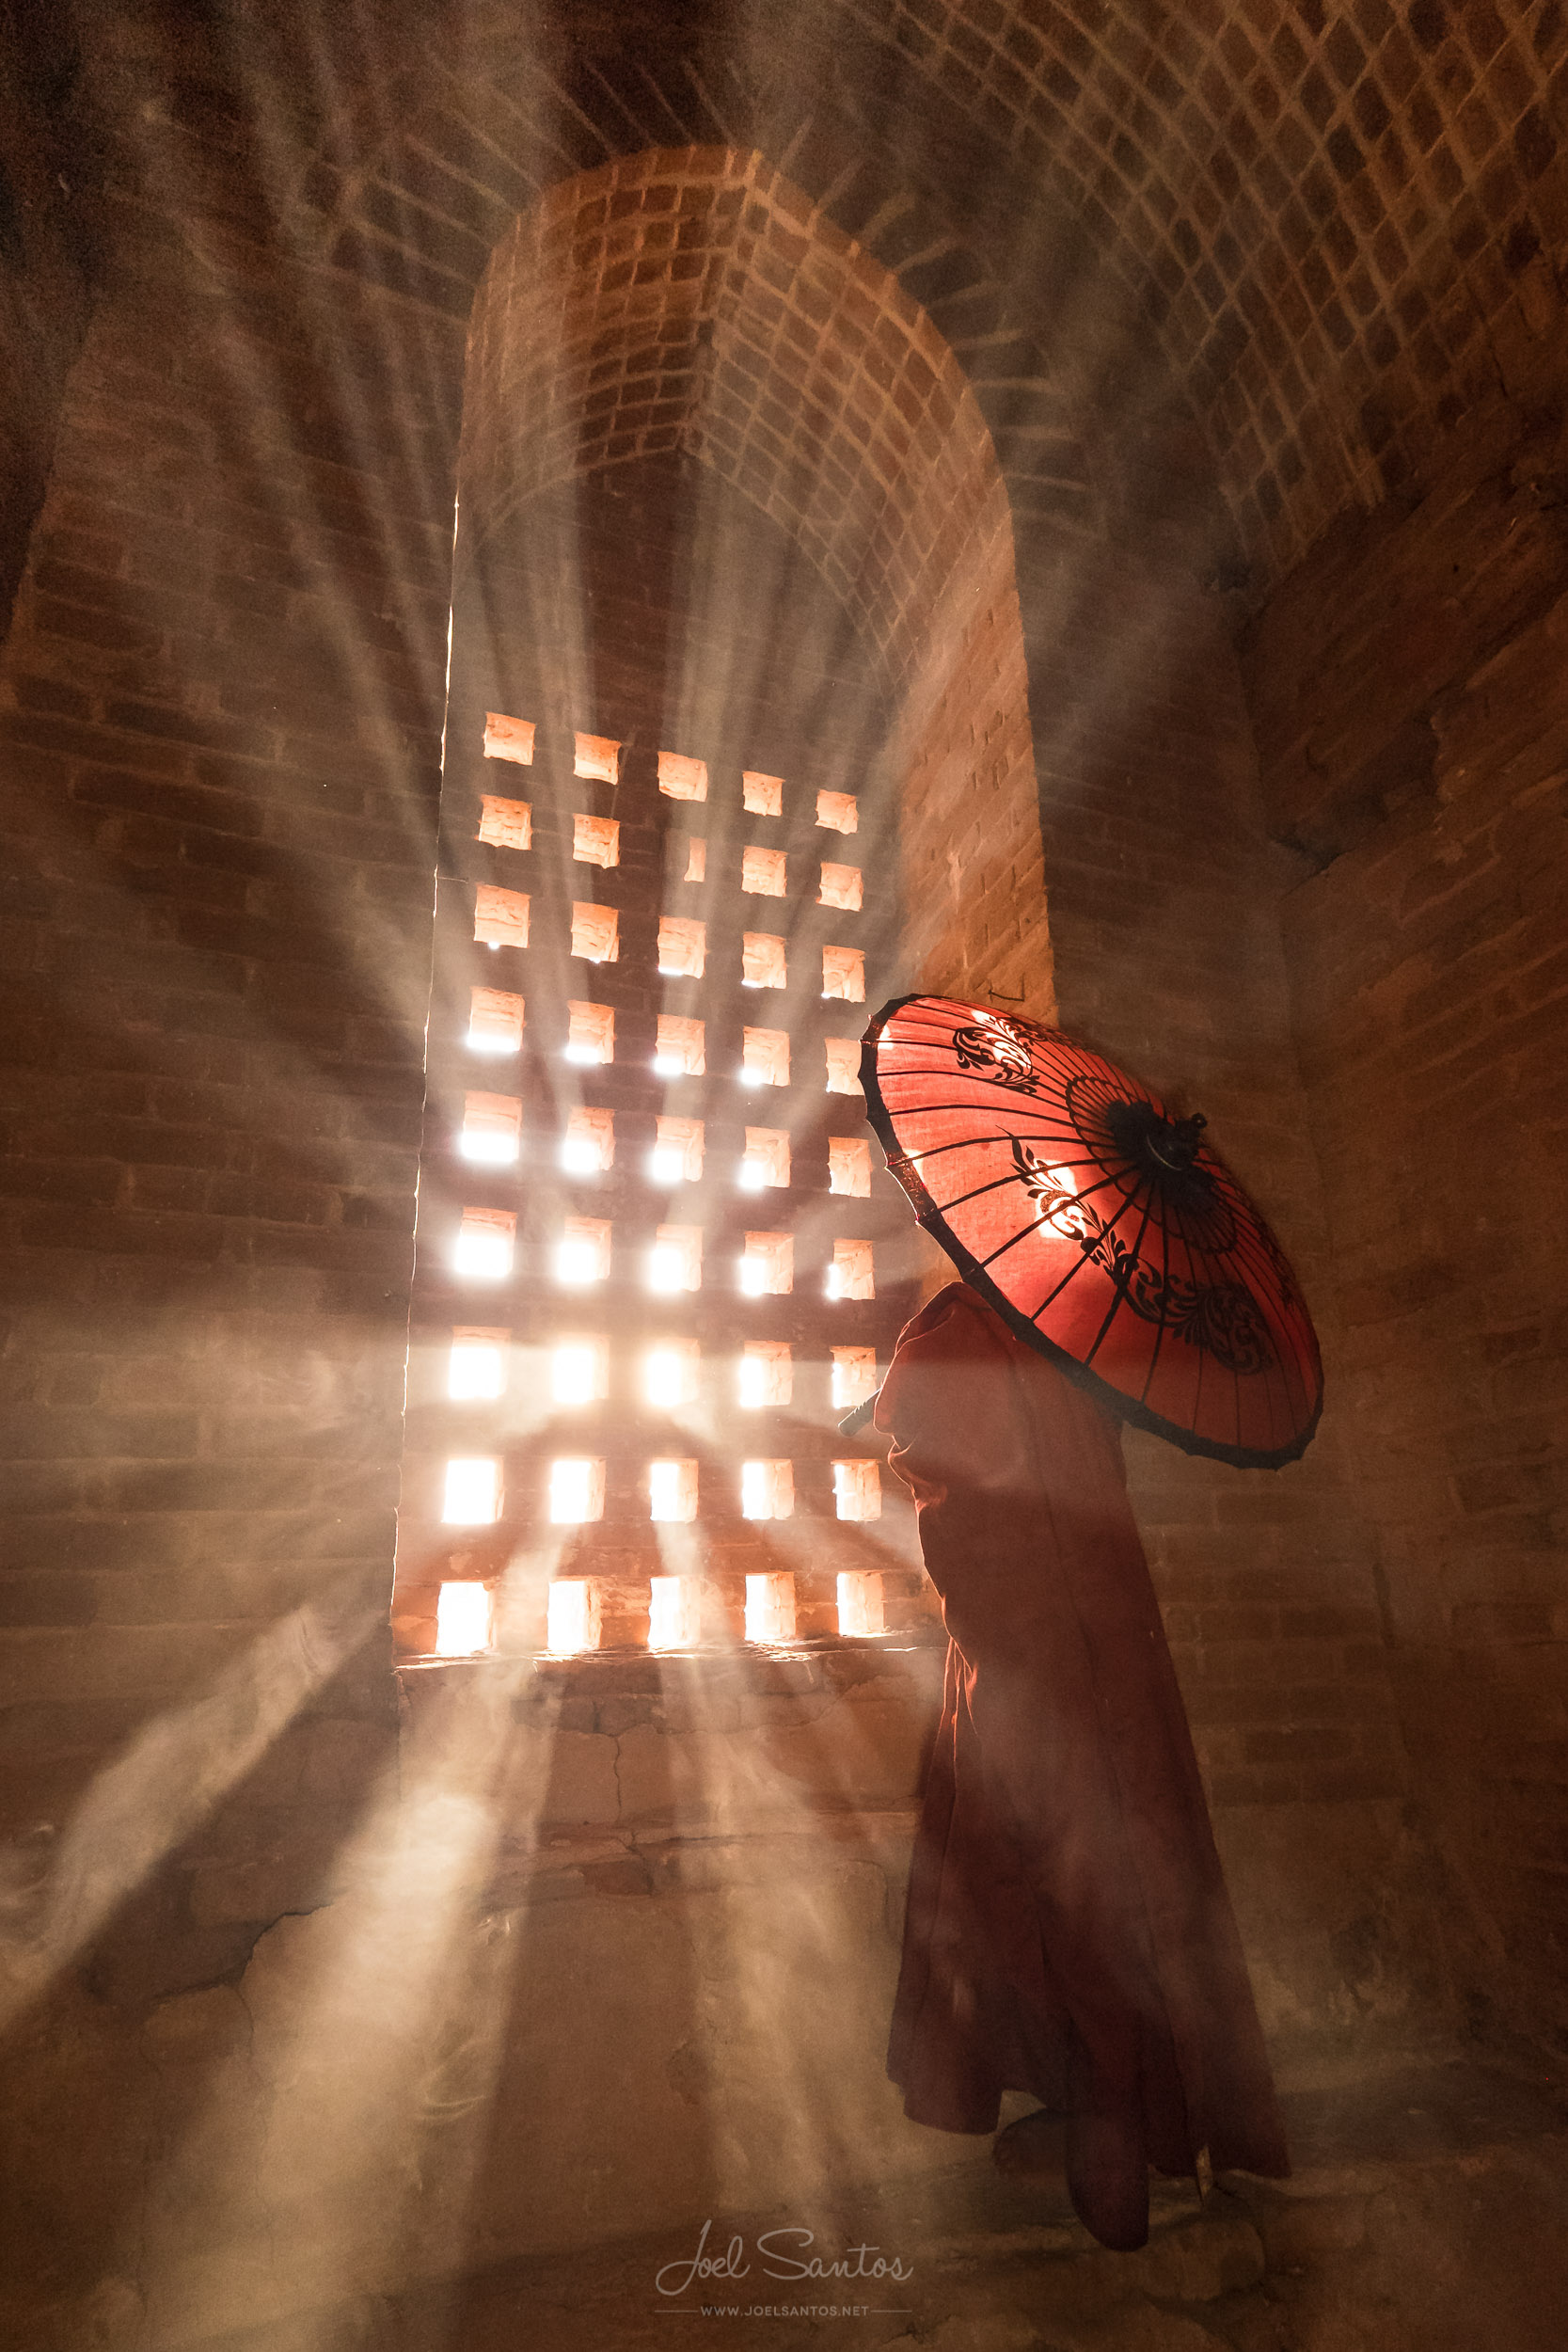 Novice buddhist monk with umbrella lit by sun rays, Bagan, Burma